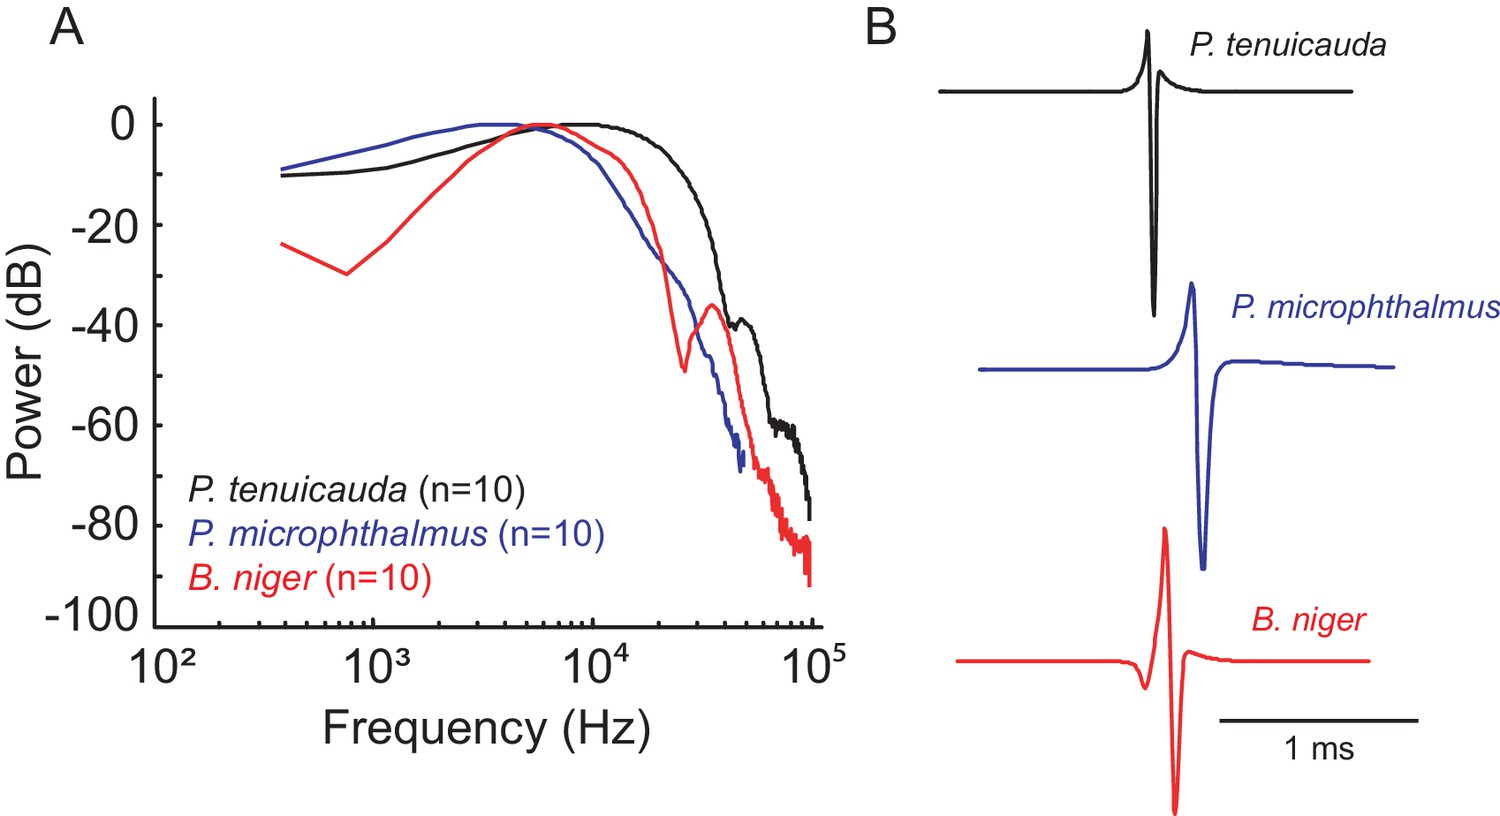 Detection Of Transient Synchrony Across Oscillating Receptors By The Fig 612 A Stabilized Basecontrolled Highfrequency Oscillator Frequency Content Relates To Duration Communication Signals In Pulse Type Mormyrids